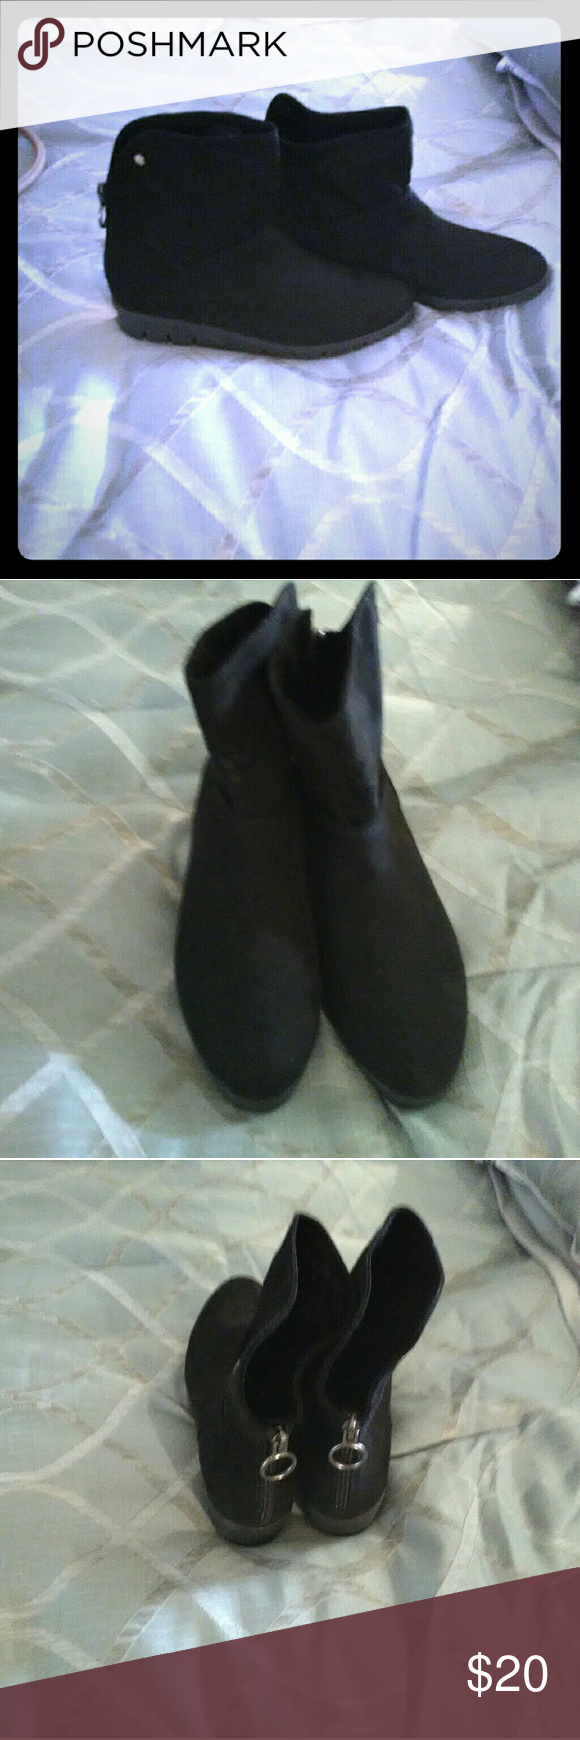 Black ankle boots Black ankle boots never worn. Took a size 8 and a size 7 to register so clerk could scan 7 and I'd get the 8.Long story short she put wrong boots in my bag.  Bought them on vacation so couldn't return them Shoes Ankle Boots & Booties